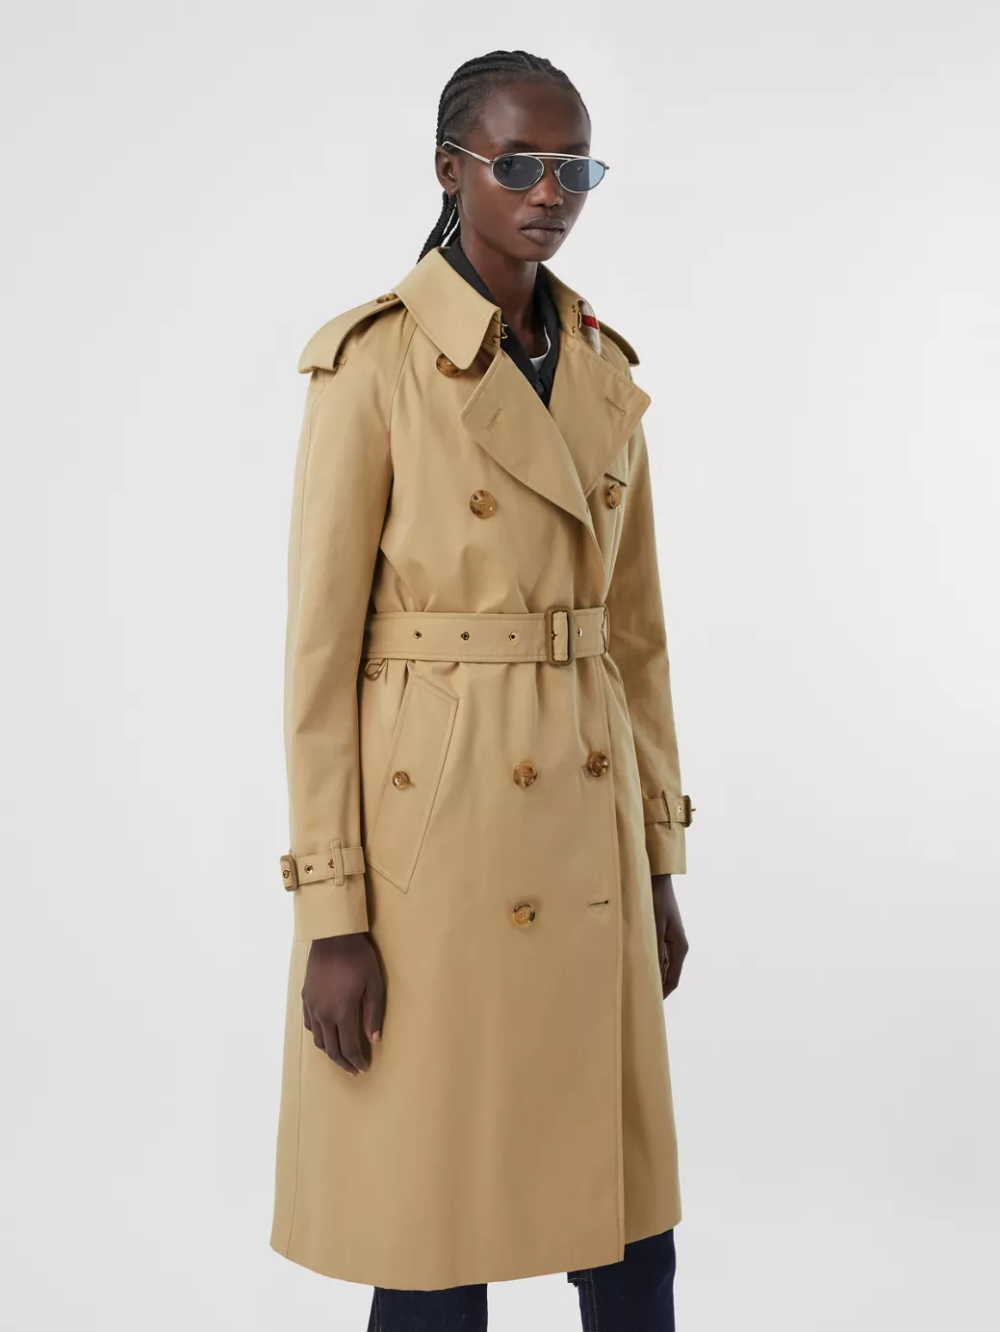 Trench Coats For Women Burberry Trench Coats Women Trench Coat Trench Coats Women Burberry